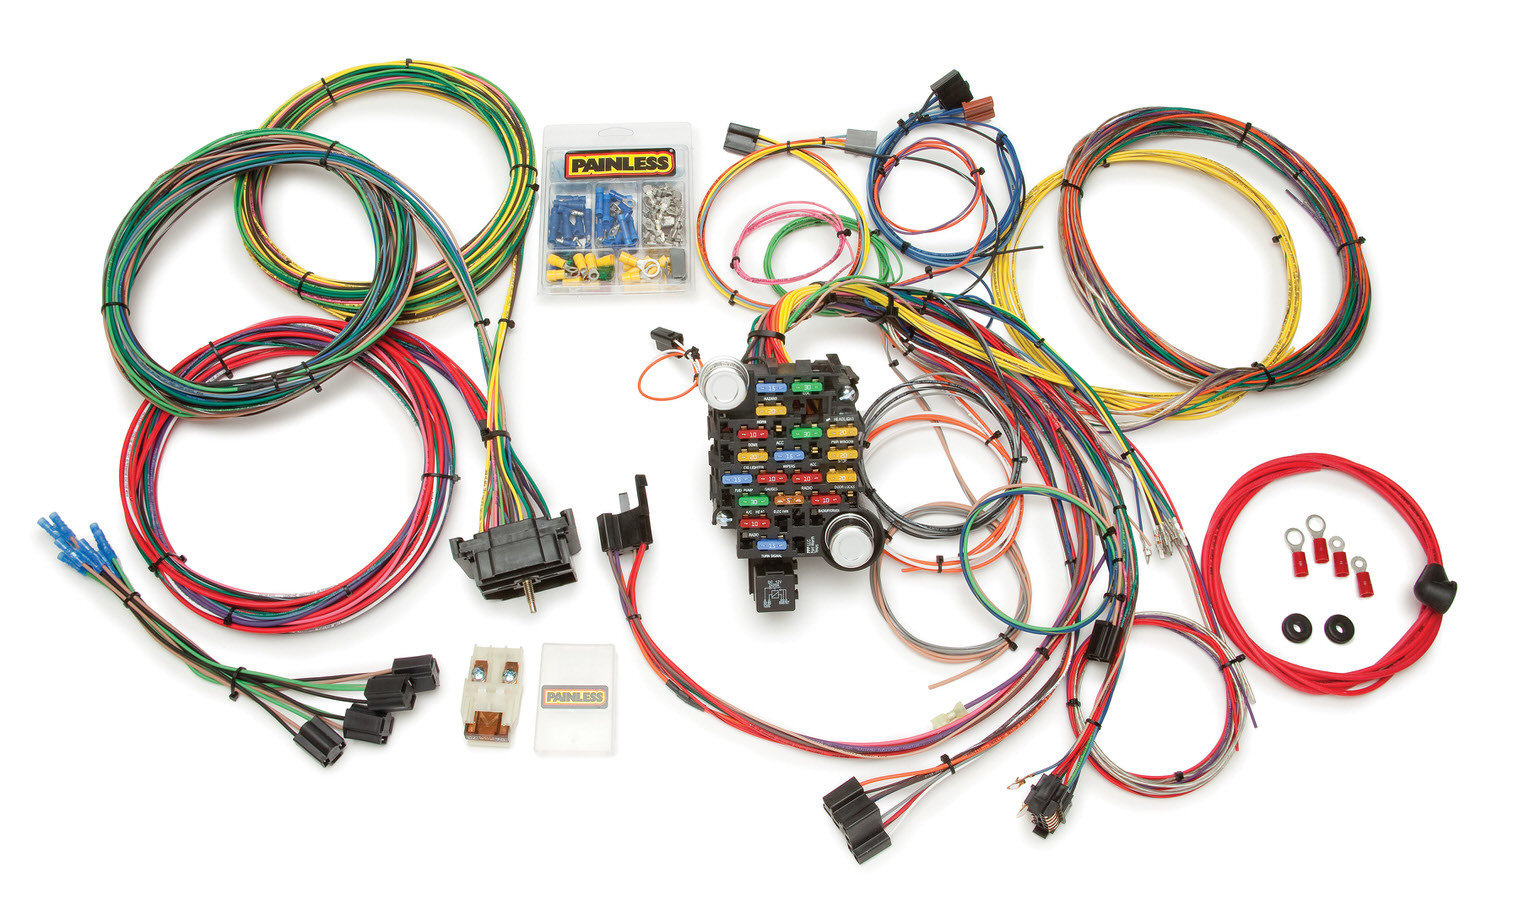 Painless Wiring 10206 Car Wiring Harness, Classic-Plus Customizable, Complete, 28 Circuit, GM Fullsize Truck 1967-72, Kit